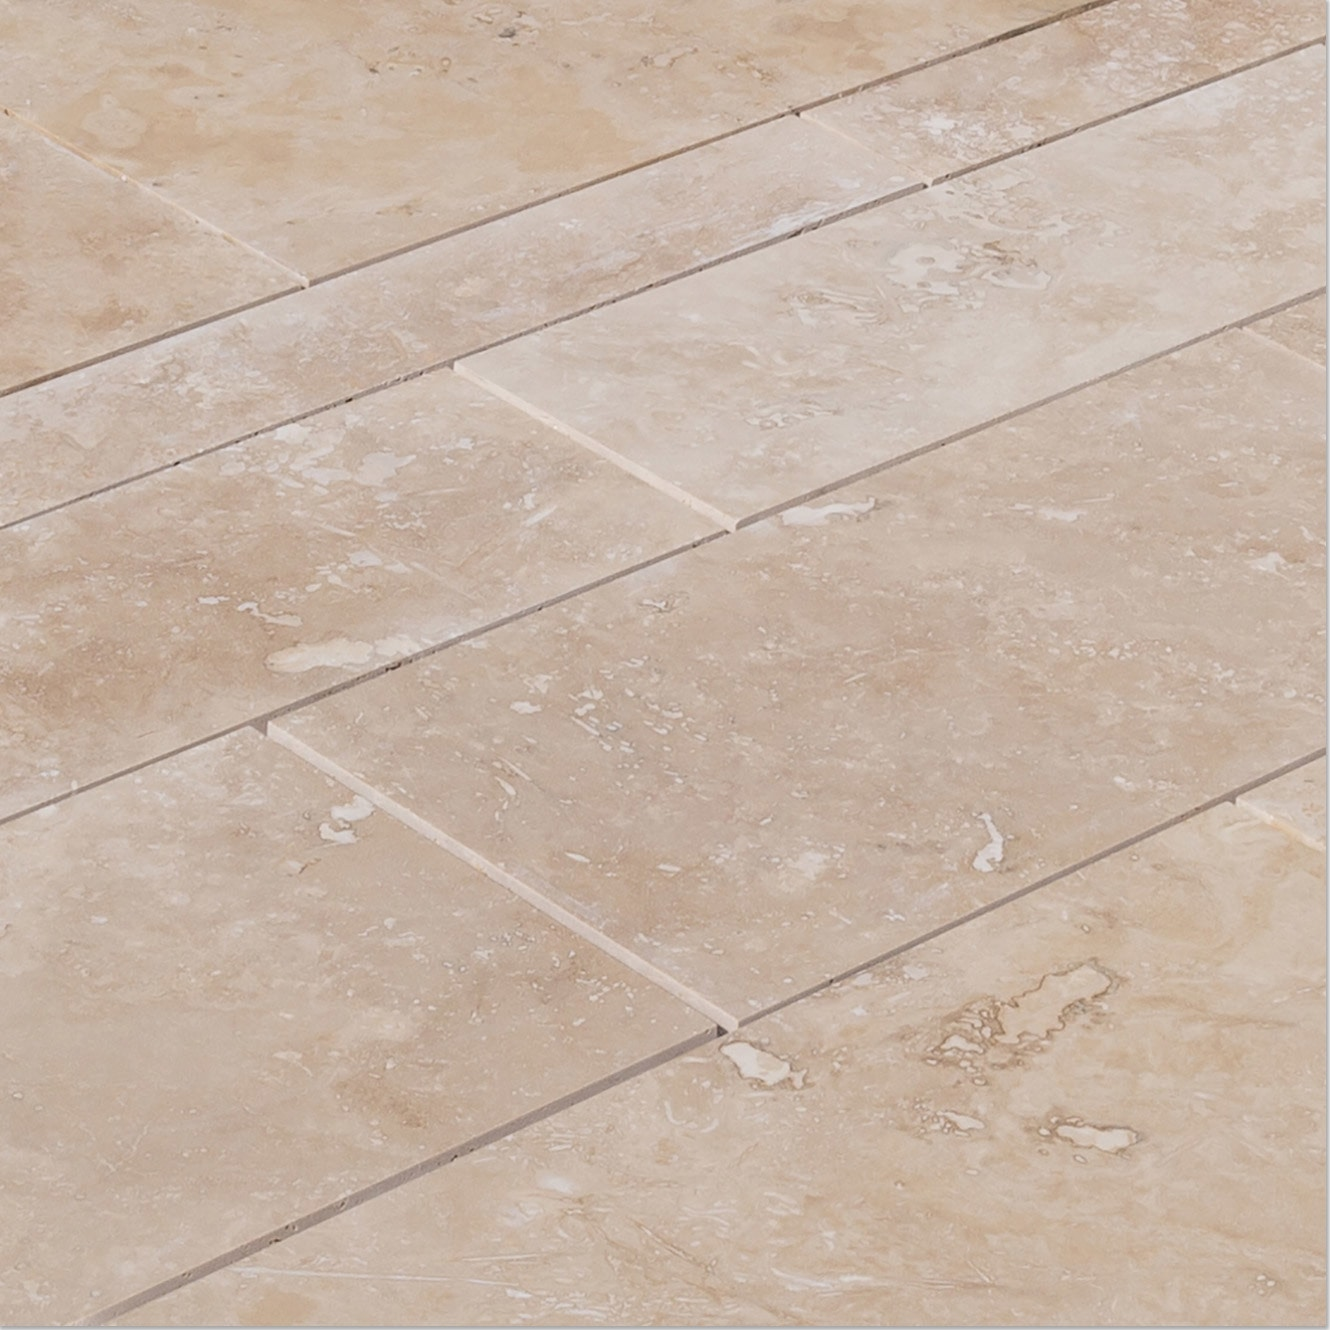 Light Beige Standard / Pattern Set / Honed and Filled / Straight Edge Travertine Tile - Honed and Filled 0